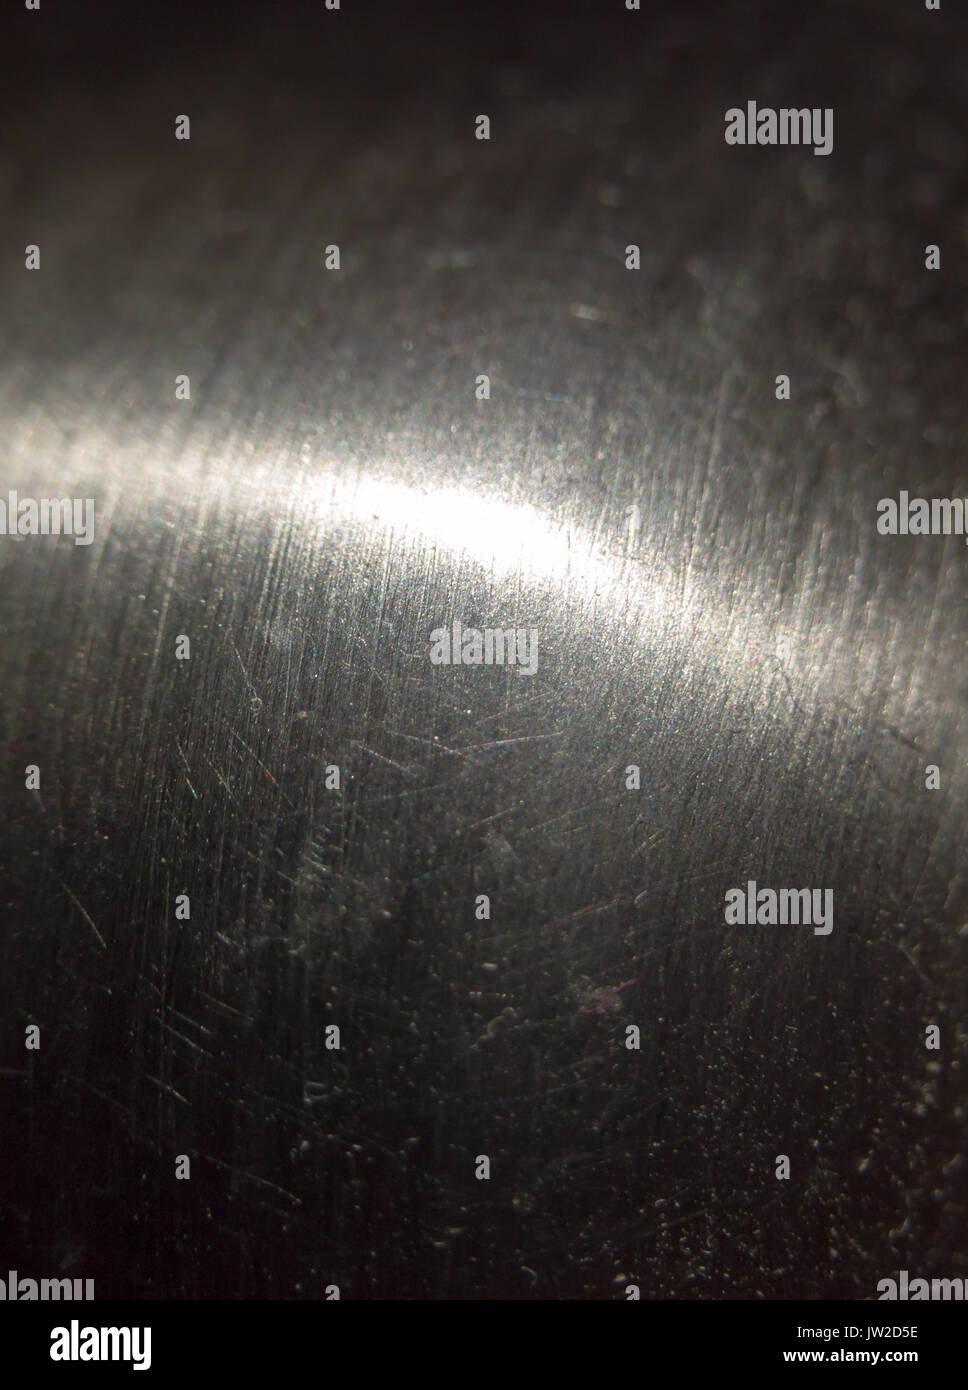 close up scratched metal surface with light across; UK - Stock Image